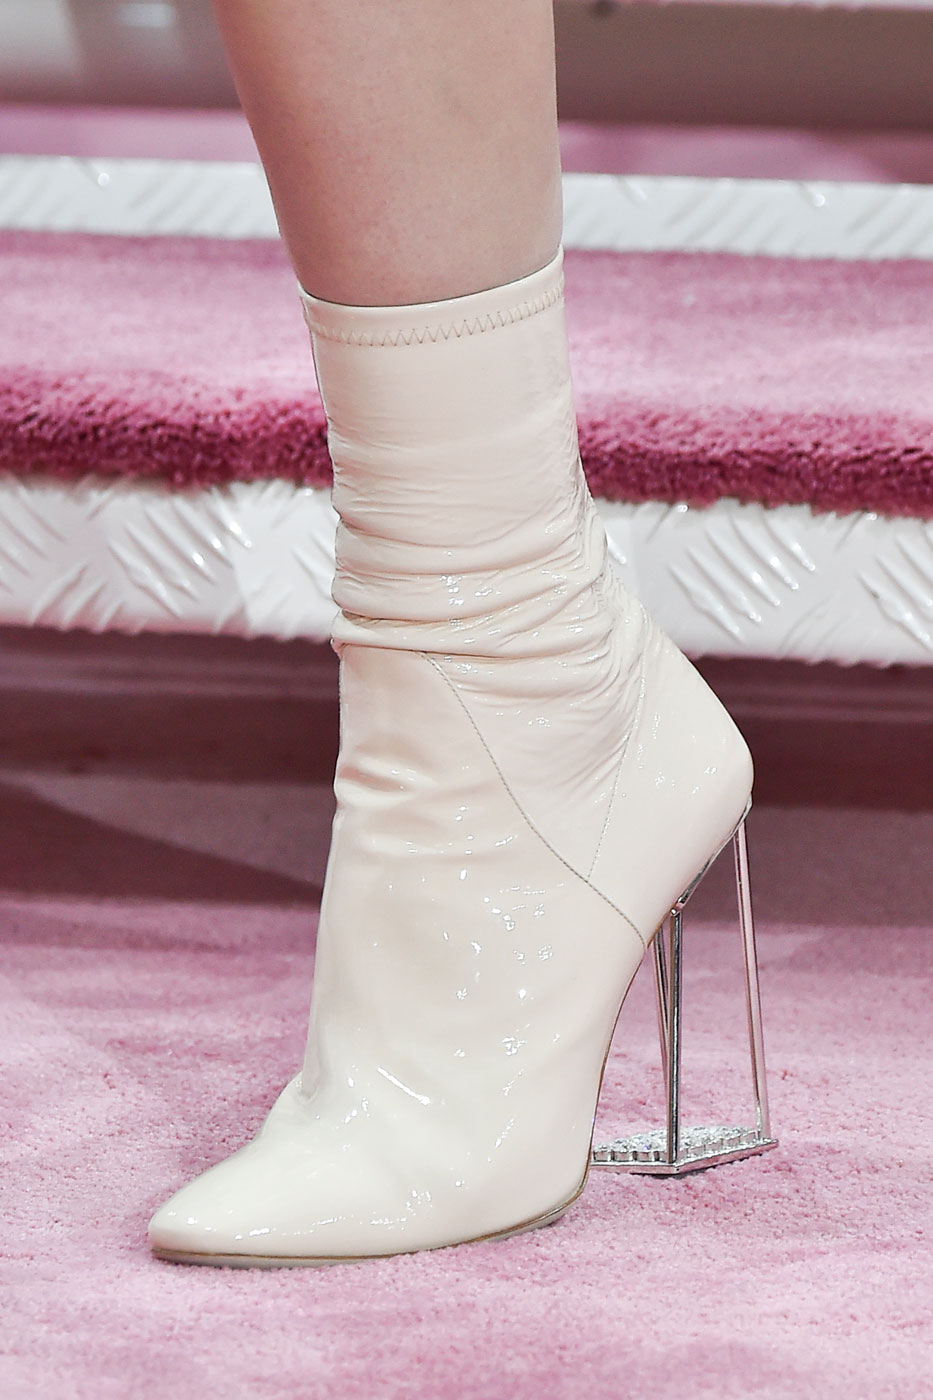 Christian-Dior-fashion-runway-show-close-ups-haute-couture-paris-spring-summer-2015-the-impression-074